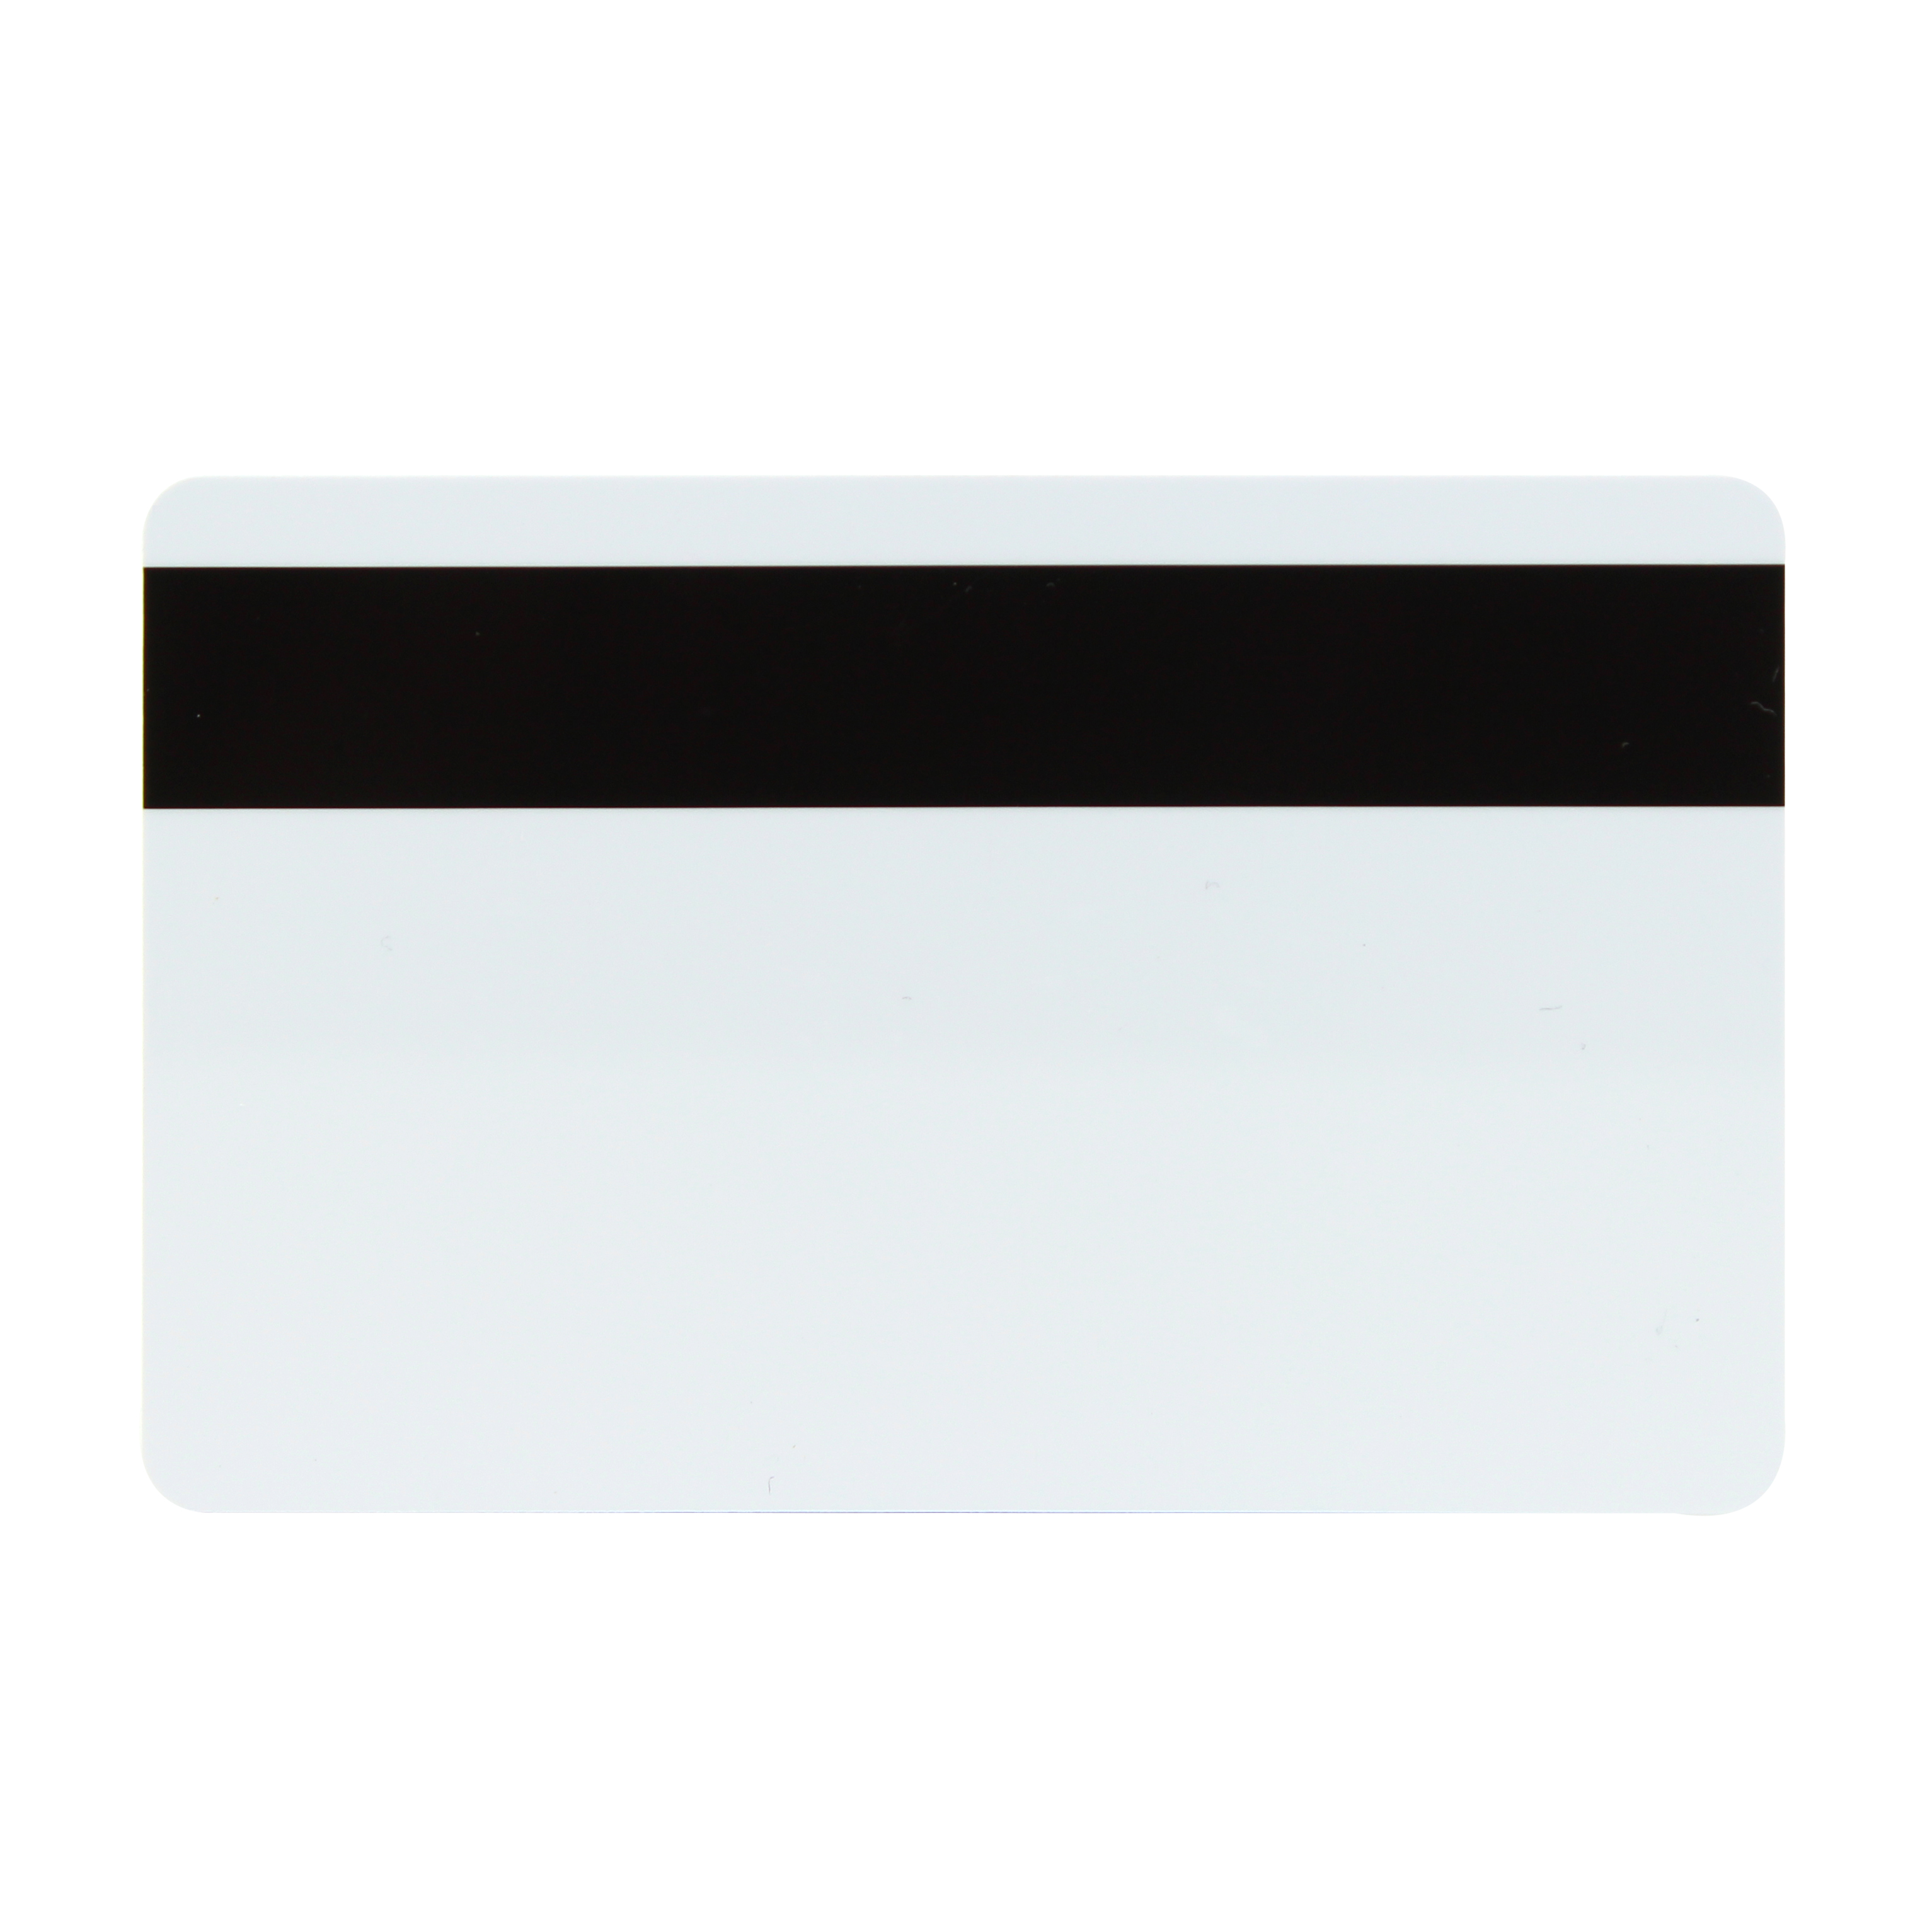 PAC Magnetic stripe card encoded ISO track 2 - white